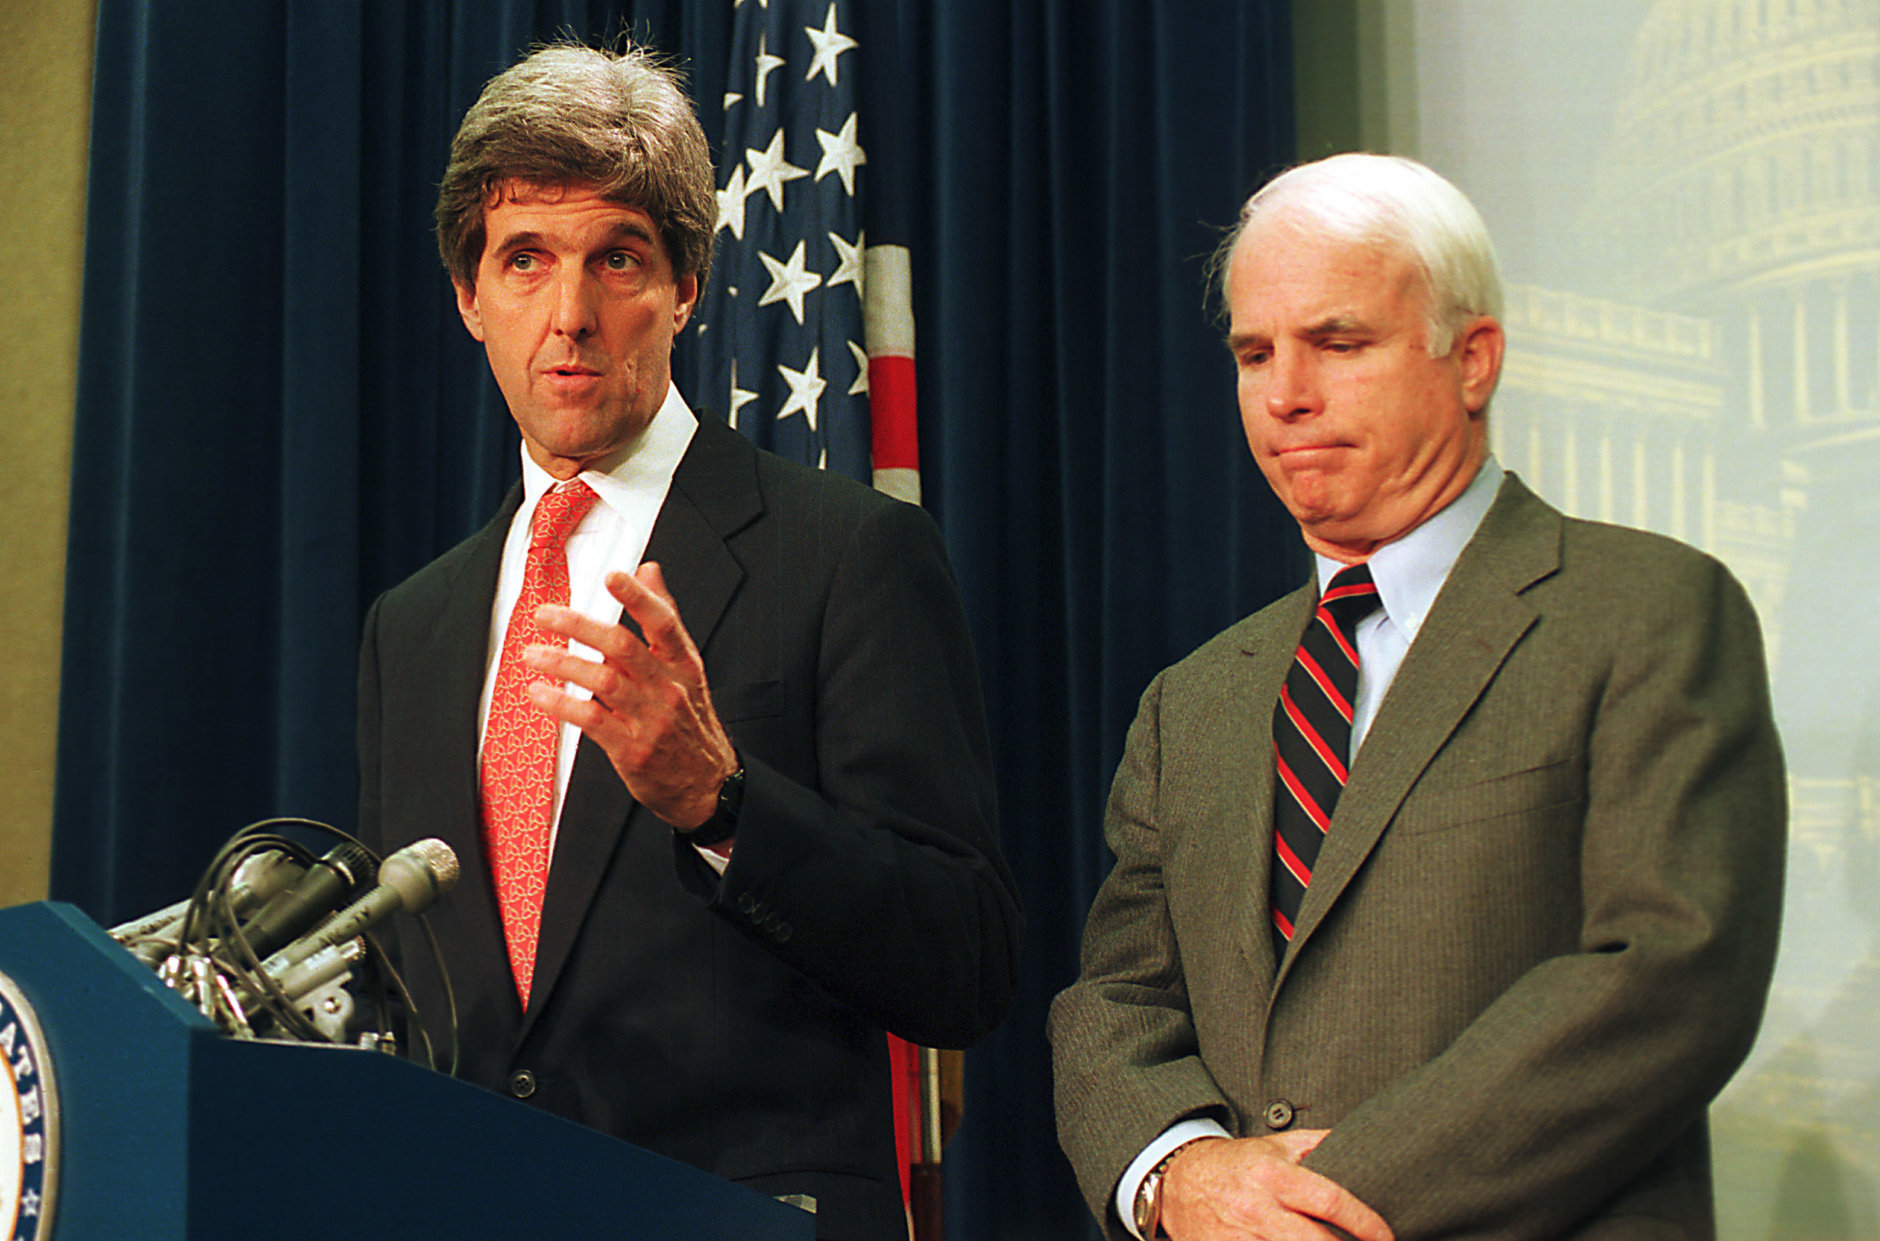 Sen. John Kerry, D-Mass., left, and Sen. John McCain, R-Ariz., meet reporters on Capitol Hill in Washington, D.C., Jan. 27, 1994, after the Senate voted to urge the Clinton administration to lift the 19-year-old trade embargo against Vietnam.  (AP Photo/John Duricka)